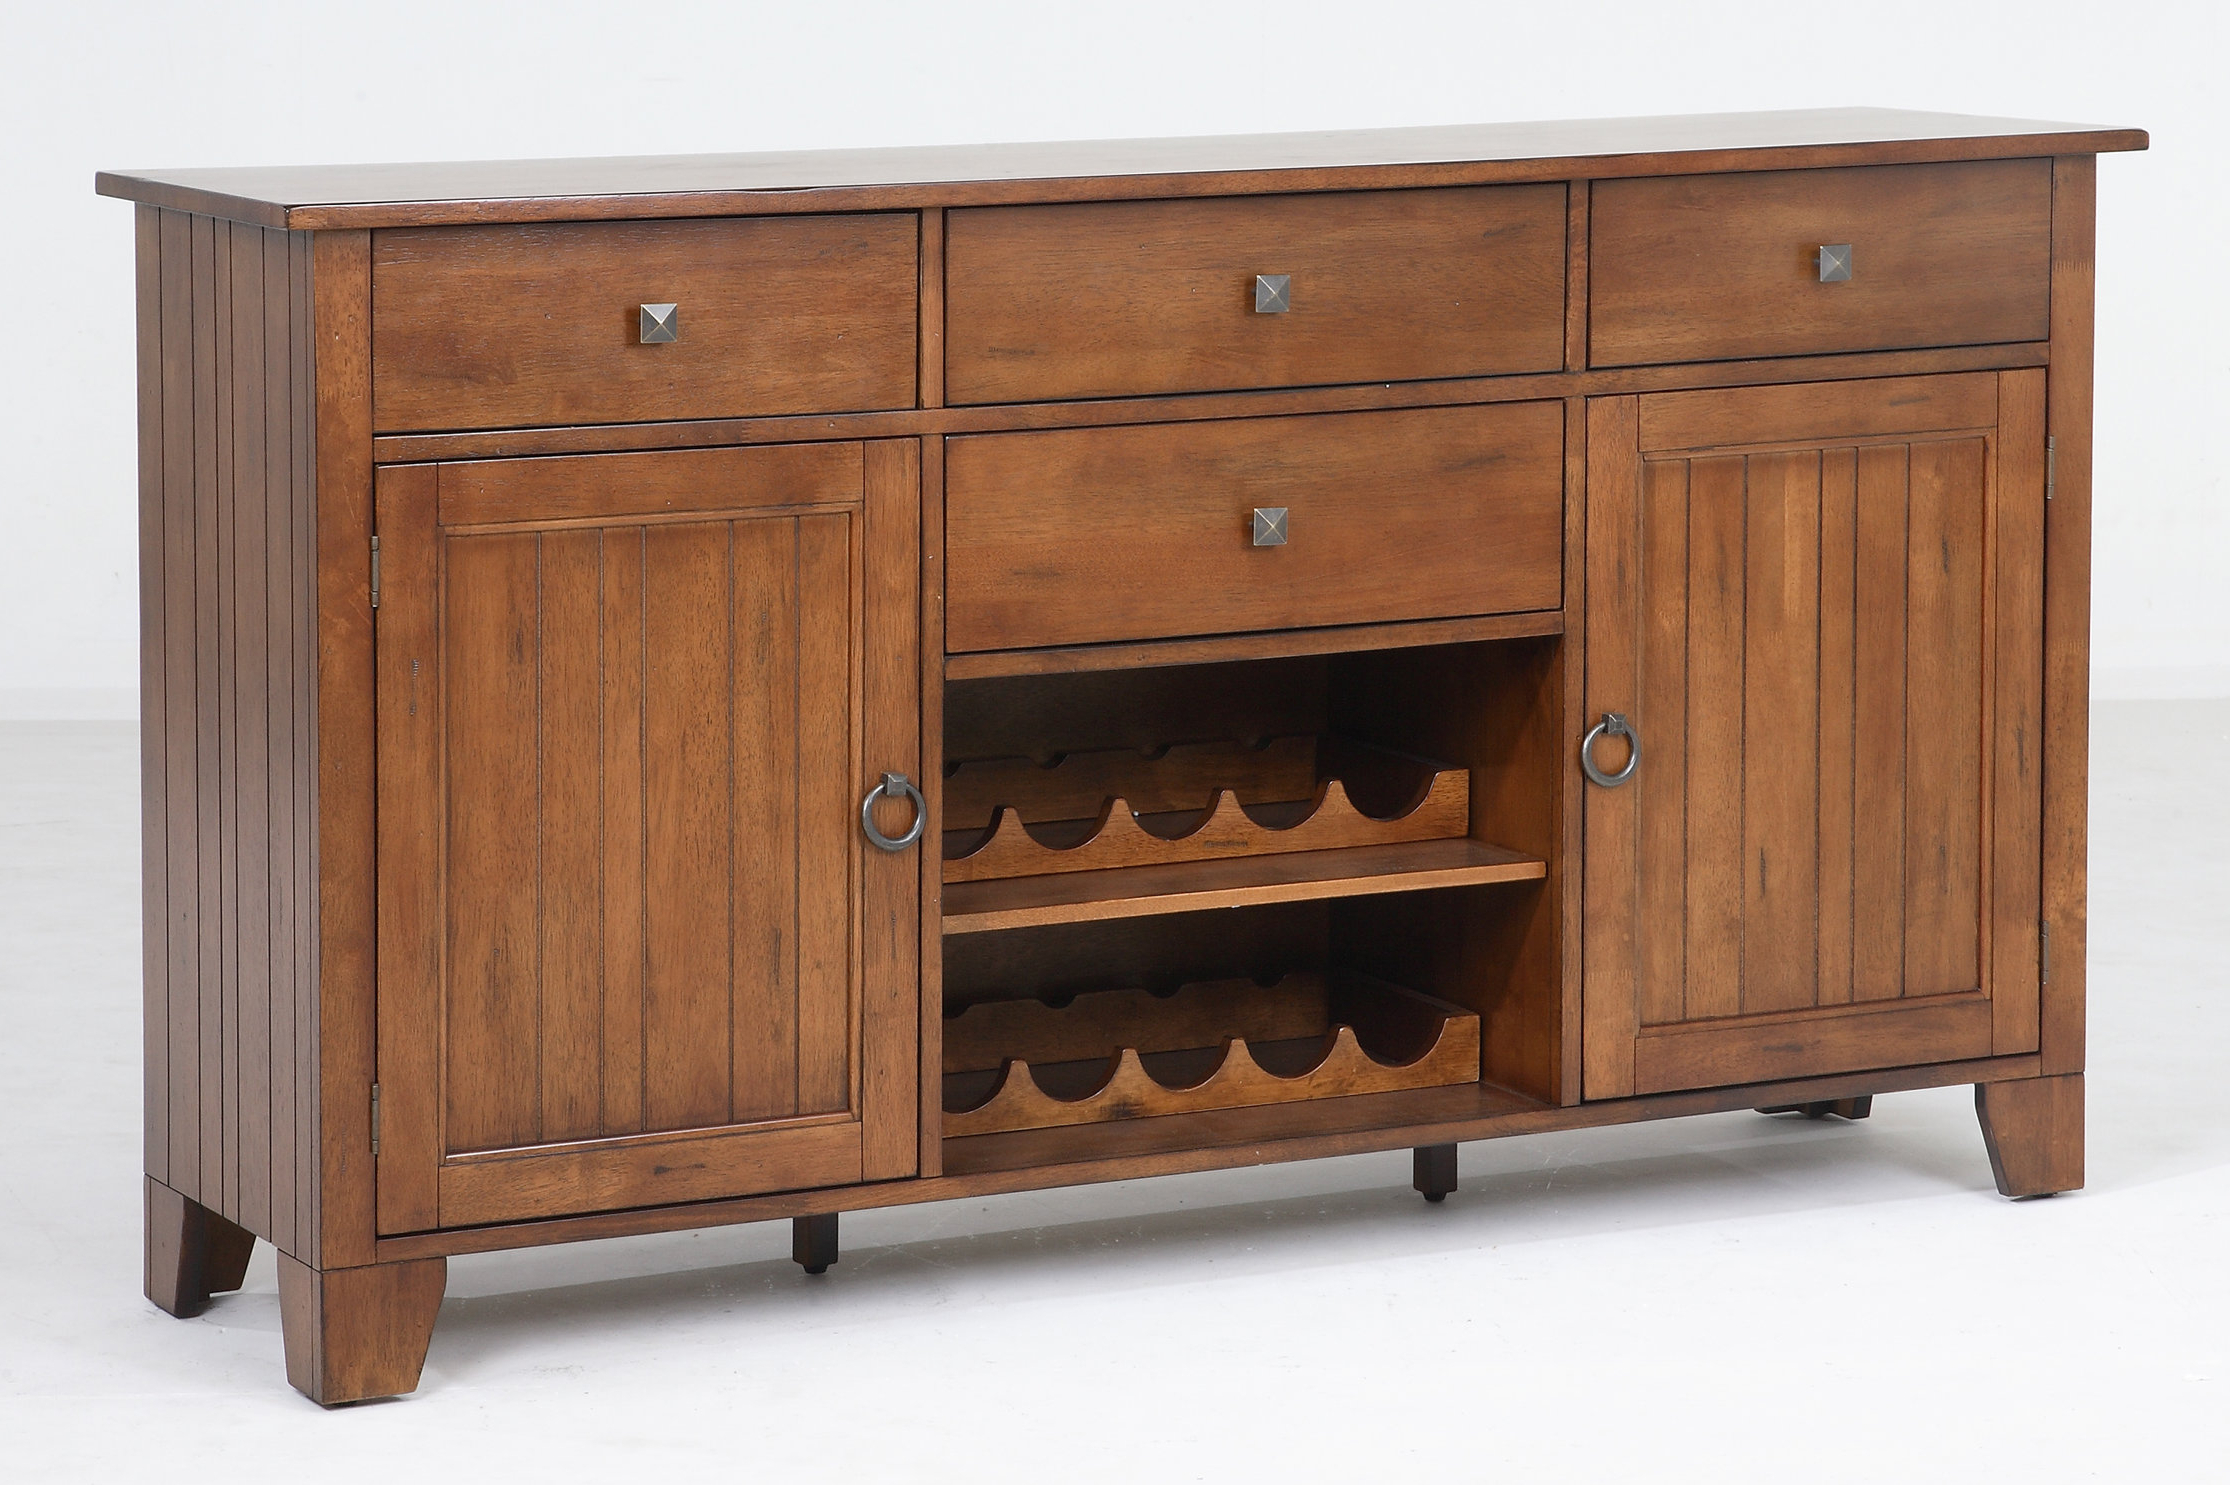 Birchley Sideboard Intended For Best And Newest Saint Gratien Sideboards (View 1 of 20)